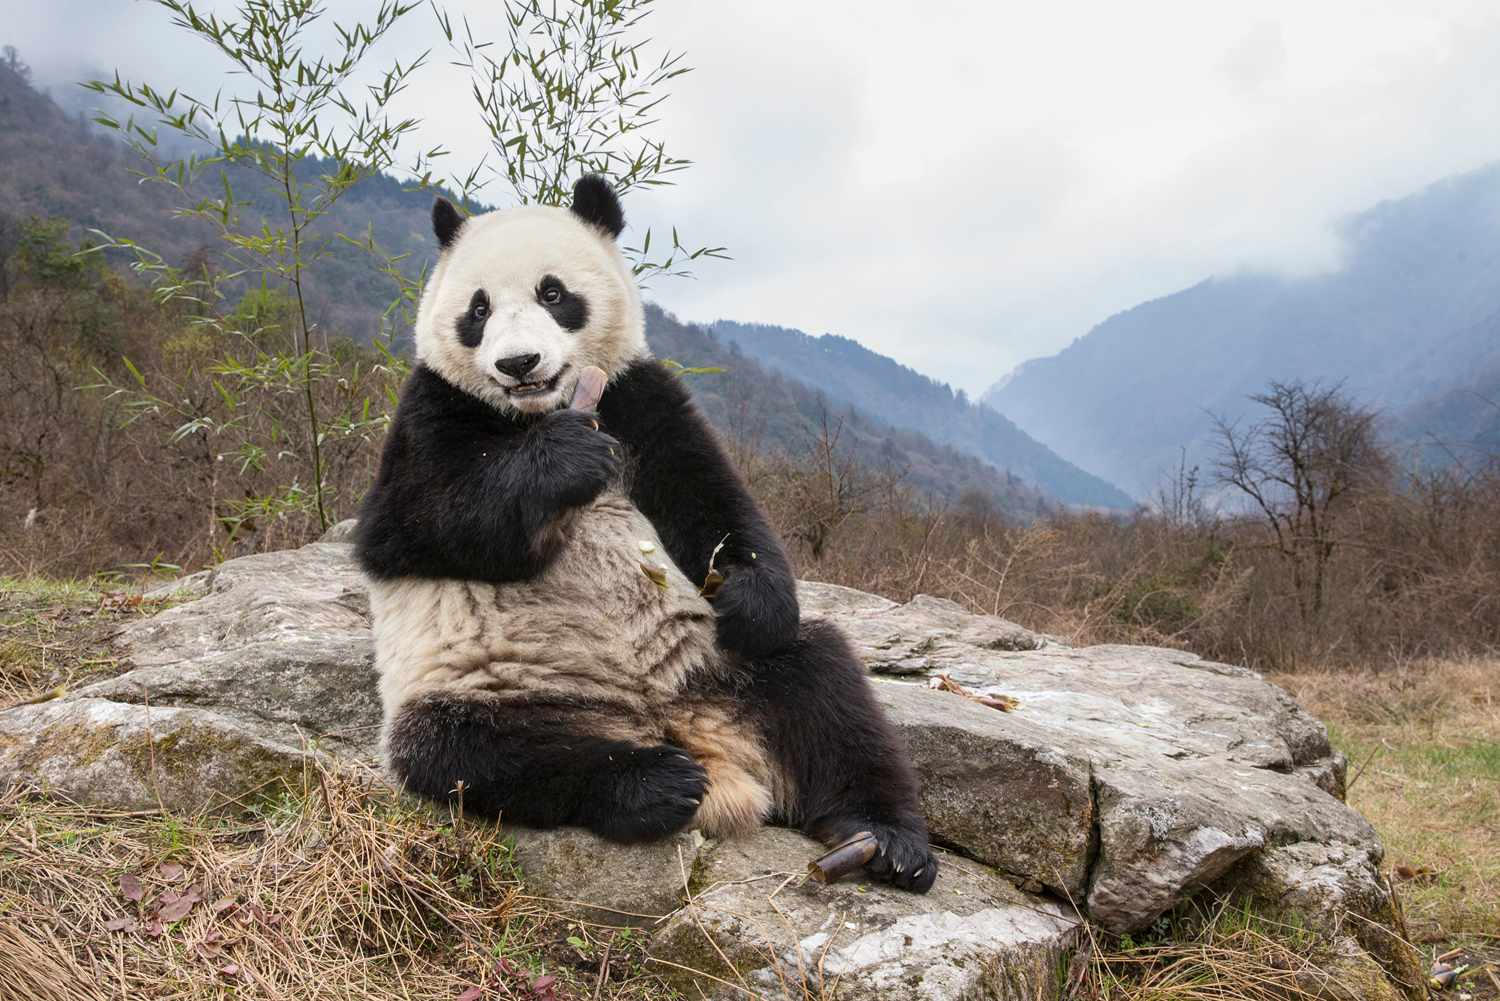 Captive breeding has its challenges because many pandas are not inclined to mate in captivity and there is a short window of opportunity for successful breeding (females only have a single oestrus cycle once a year). © Suzi Eszterhas